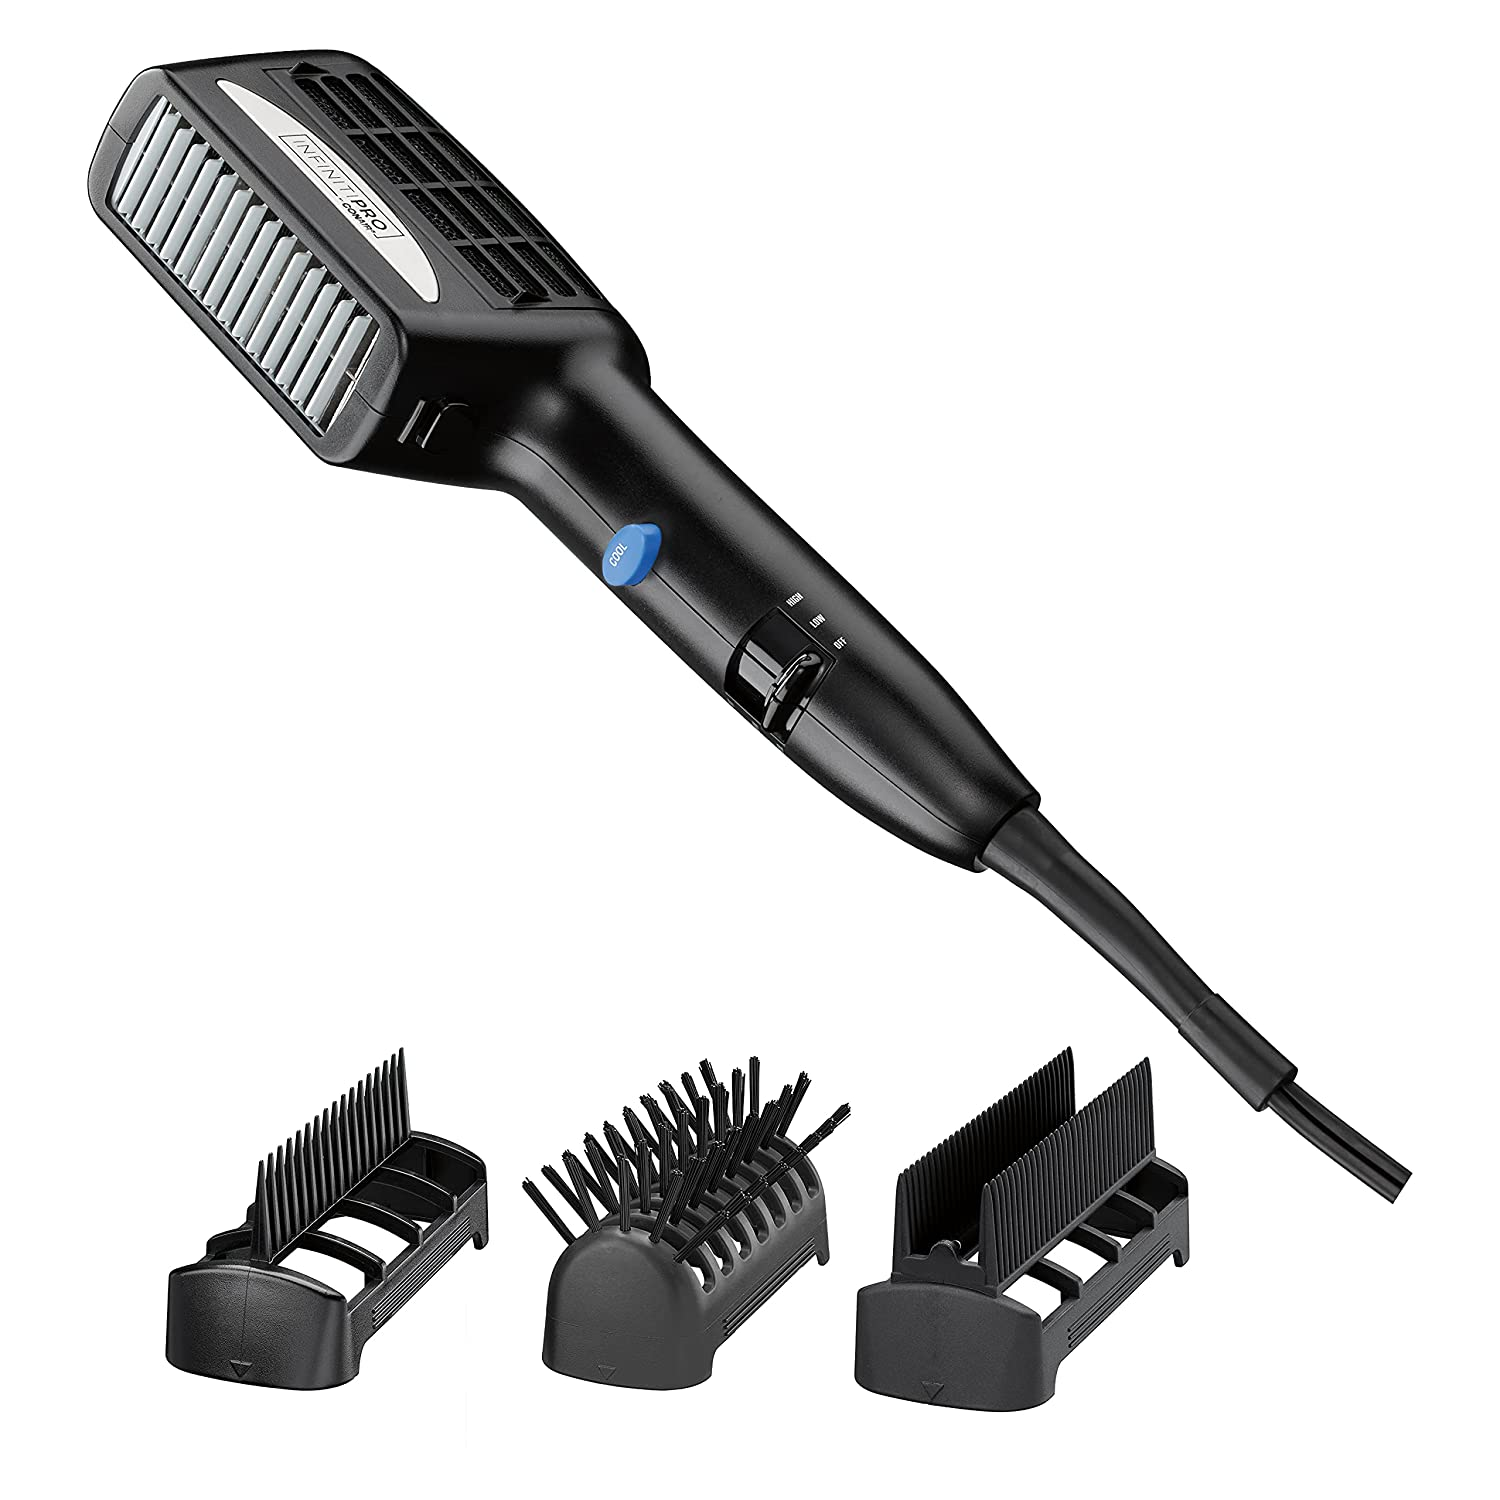 INFINITIPRO BY CONAIR 1875 Watt 3-in-1 Ceramic Styler with 3 Attachments : Everything Else